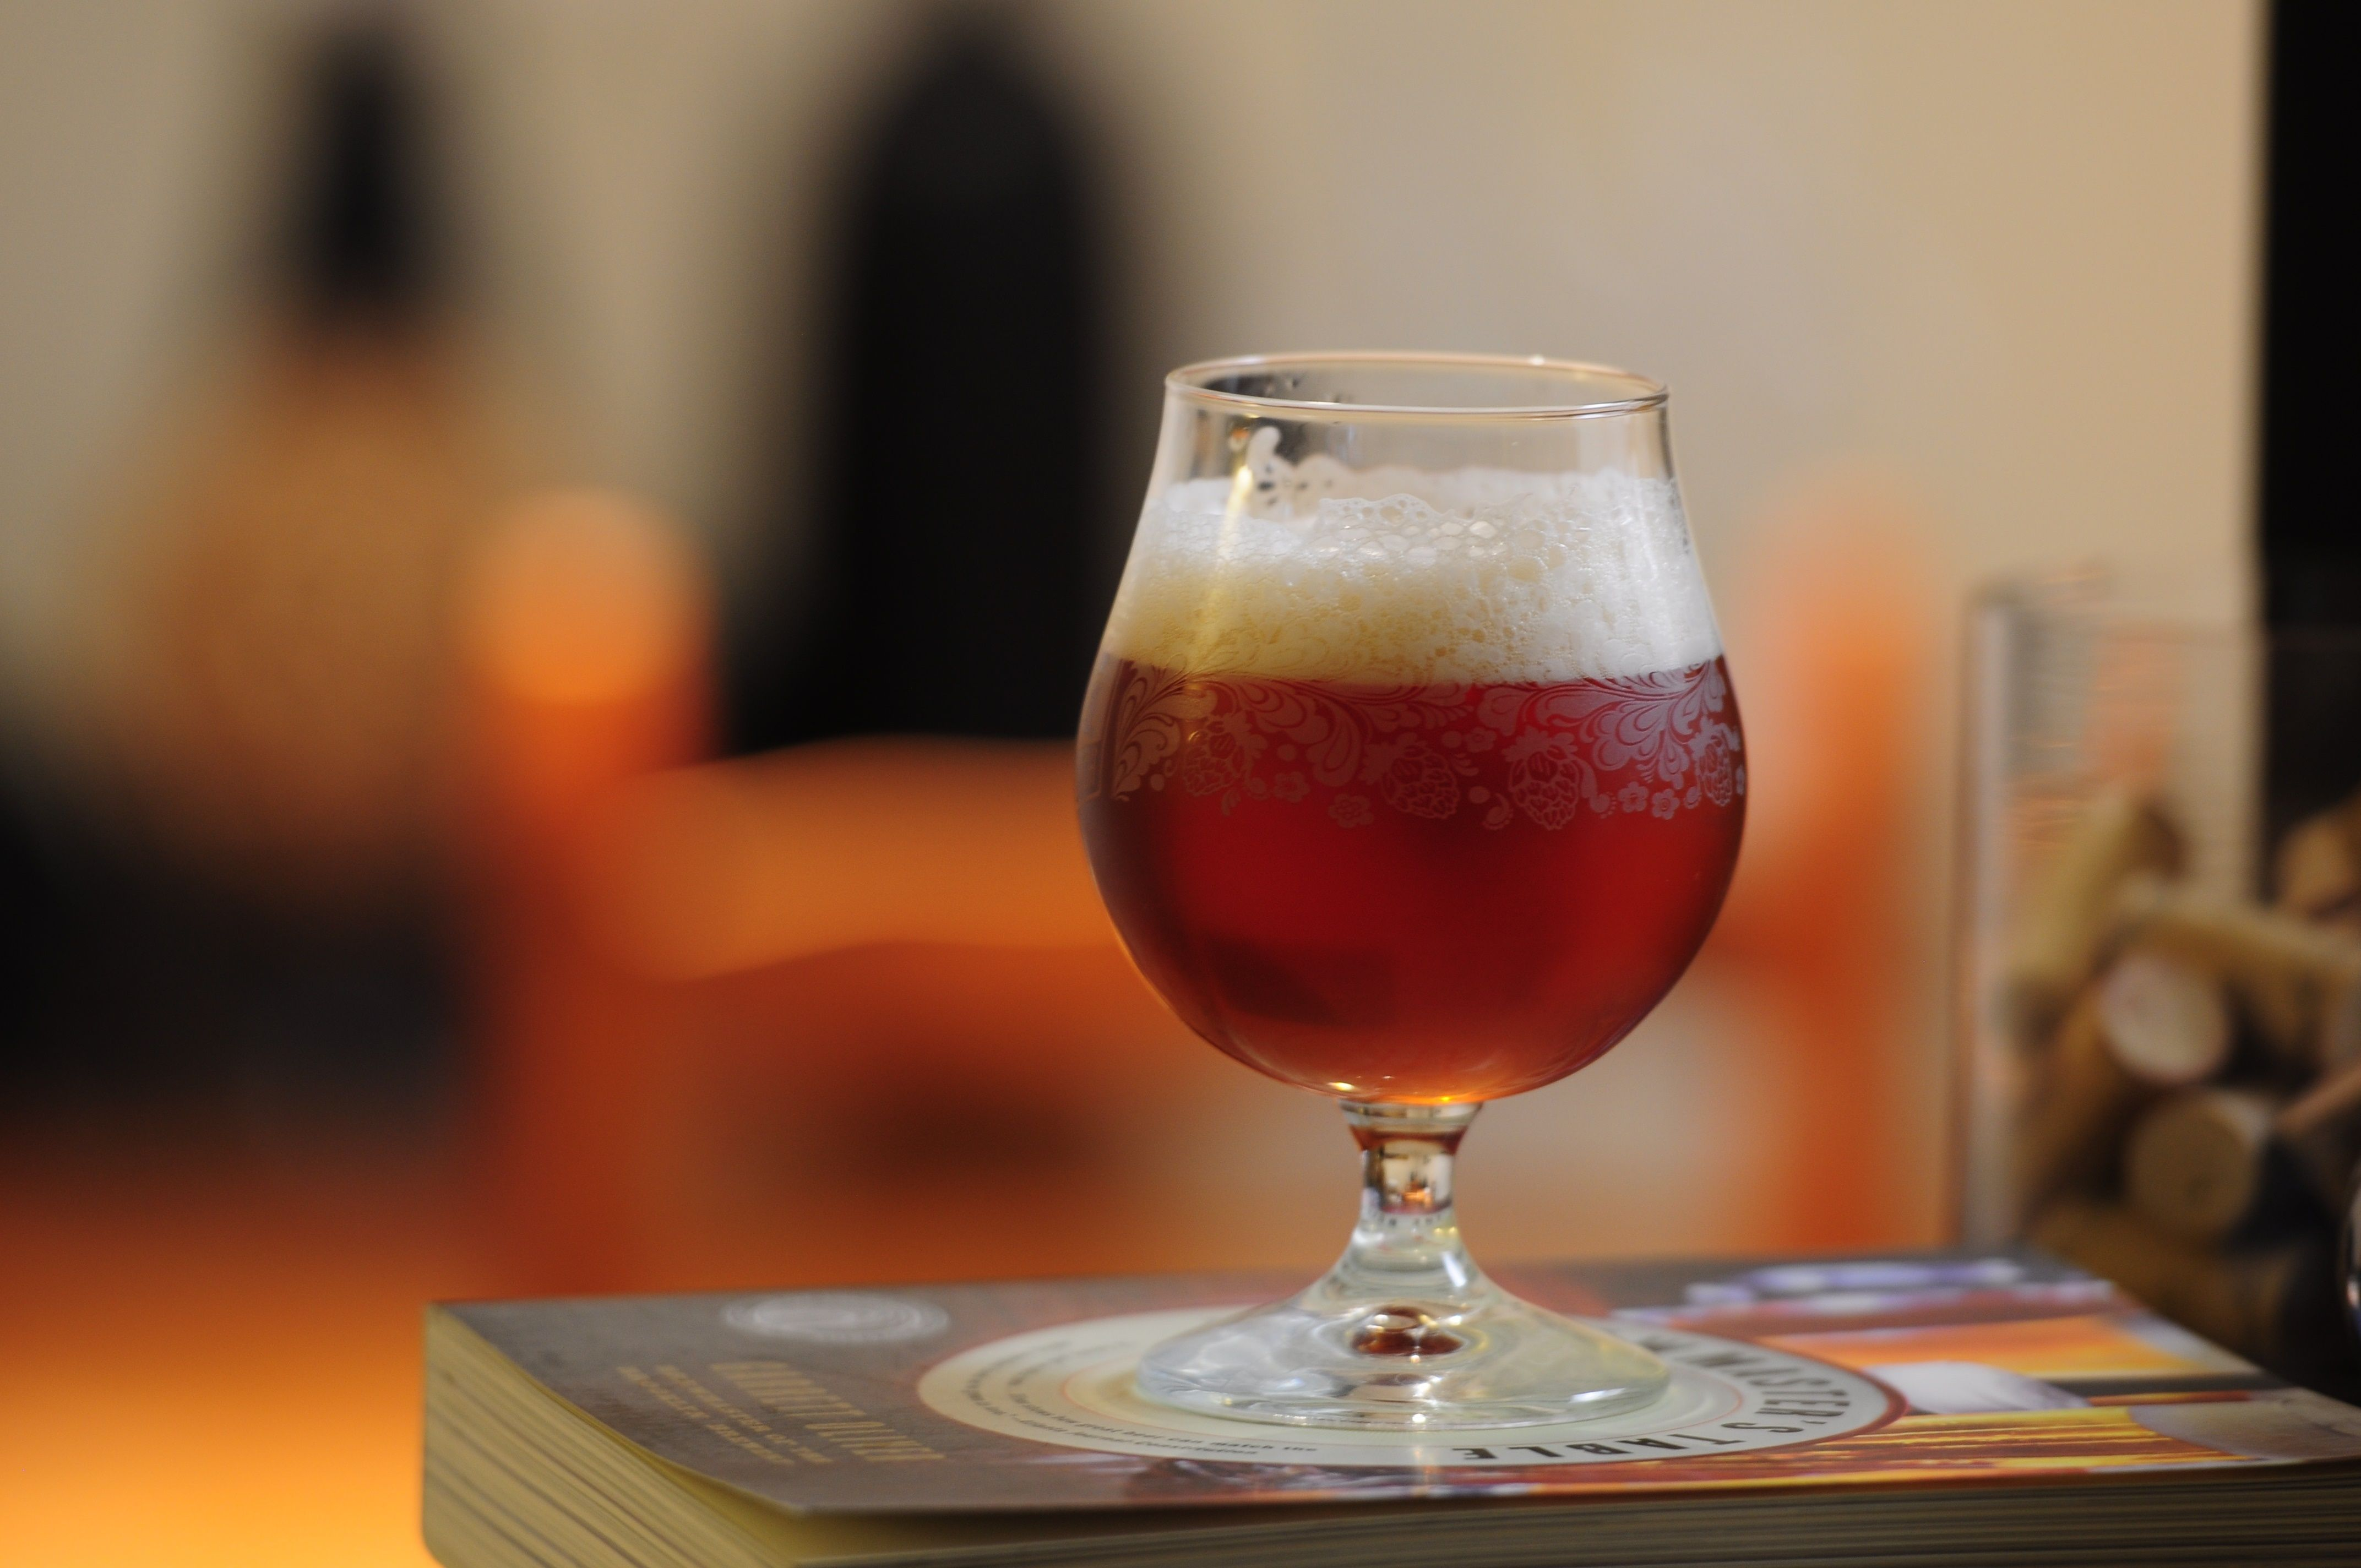 The India Pale Ale Known As Ipa Is The Most Popular Craft Beer Style Being Produced In America Today To Enjoy The Hop For Sour Beer Drinking Beer Craft Beer